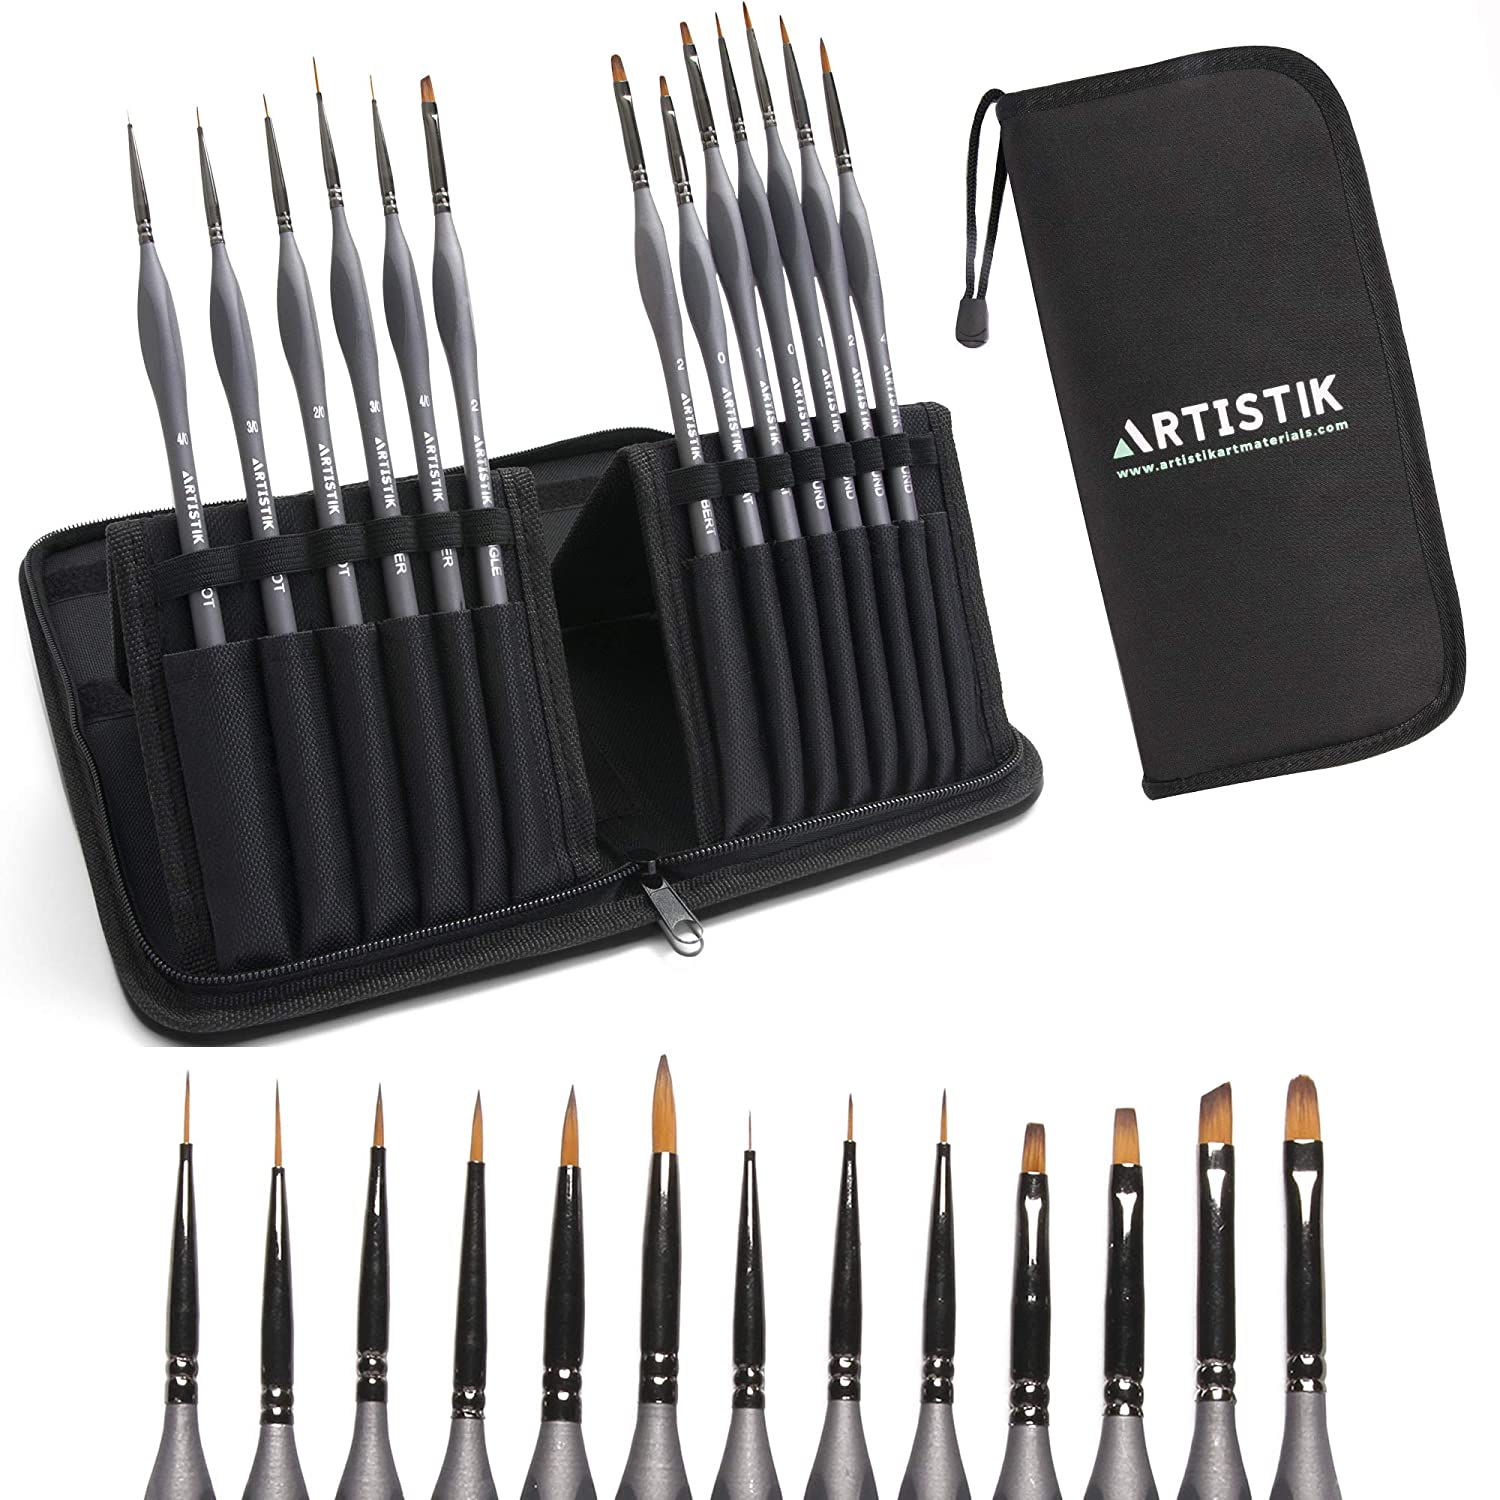 Miniature Painting Kit - (Set of 13) Micro Detail Paint Brushes with Black Carrying Case for Painting Action Figures, Models, Nail Art, Fantasy Nails, Acrylic, Oil, Detail Art, Stained Glass and More